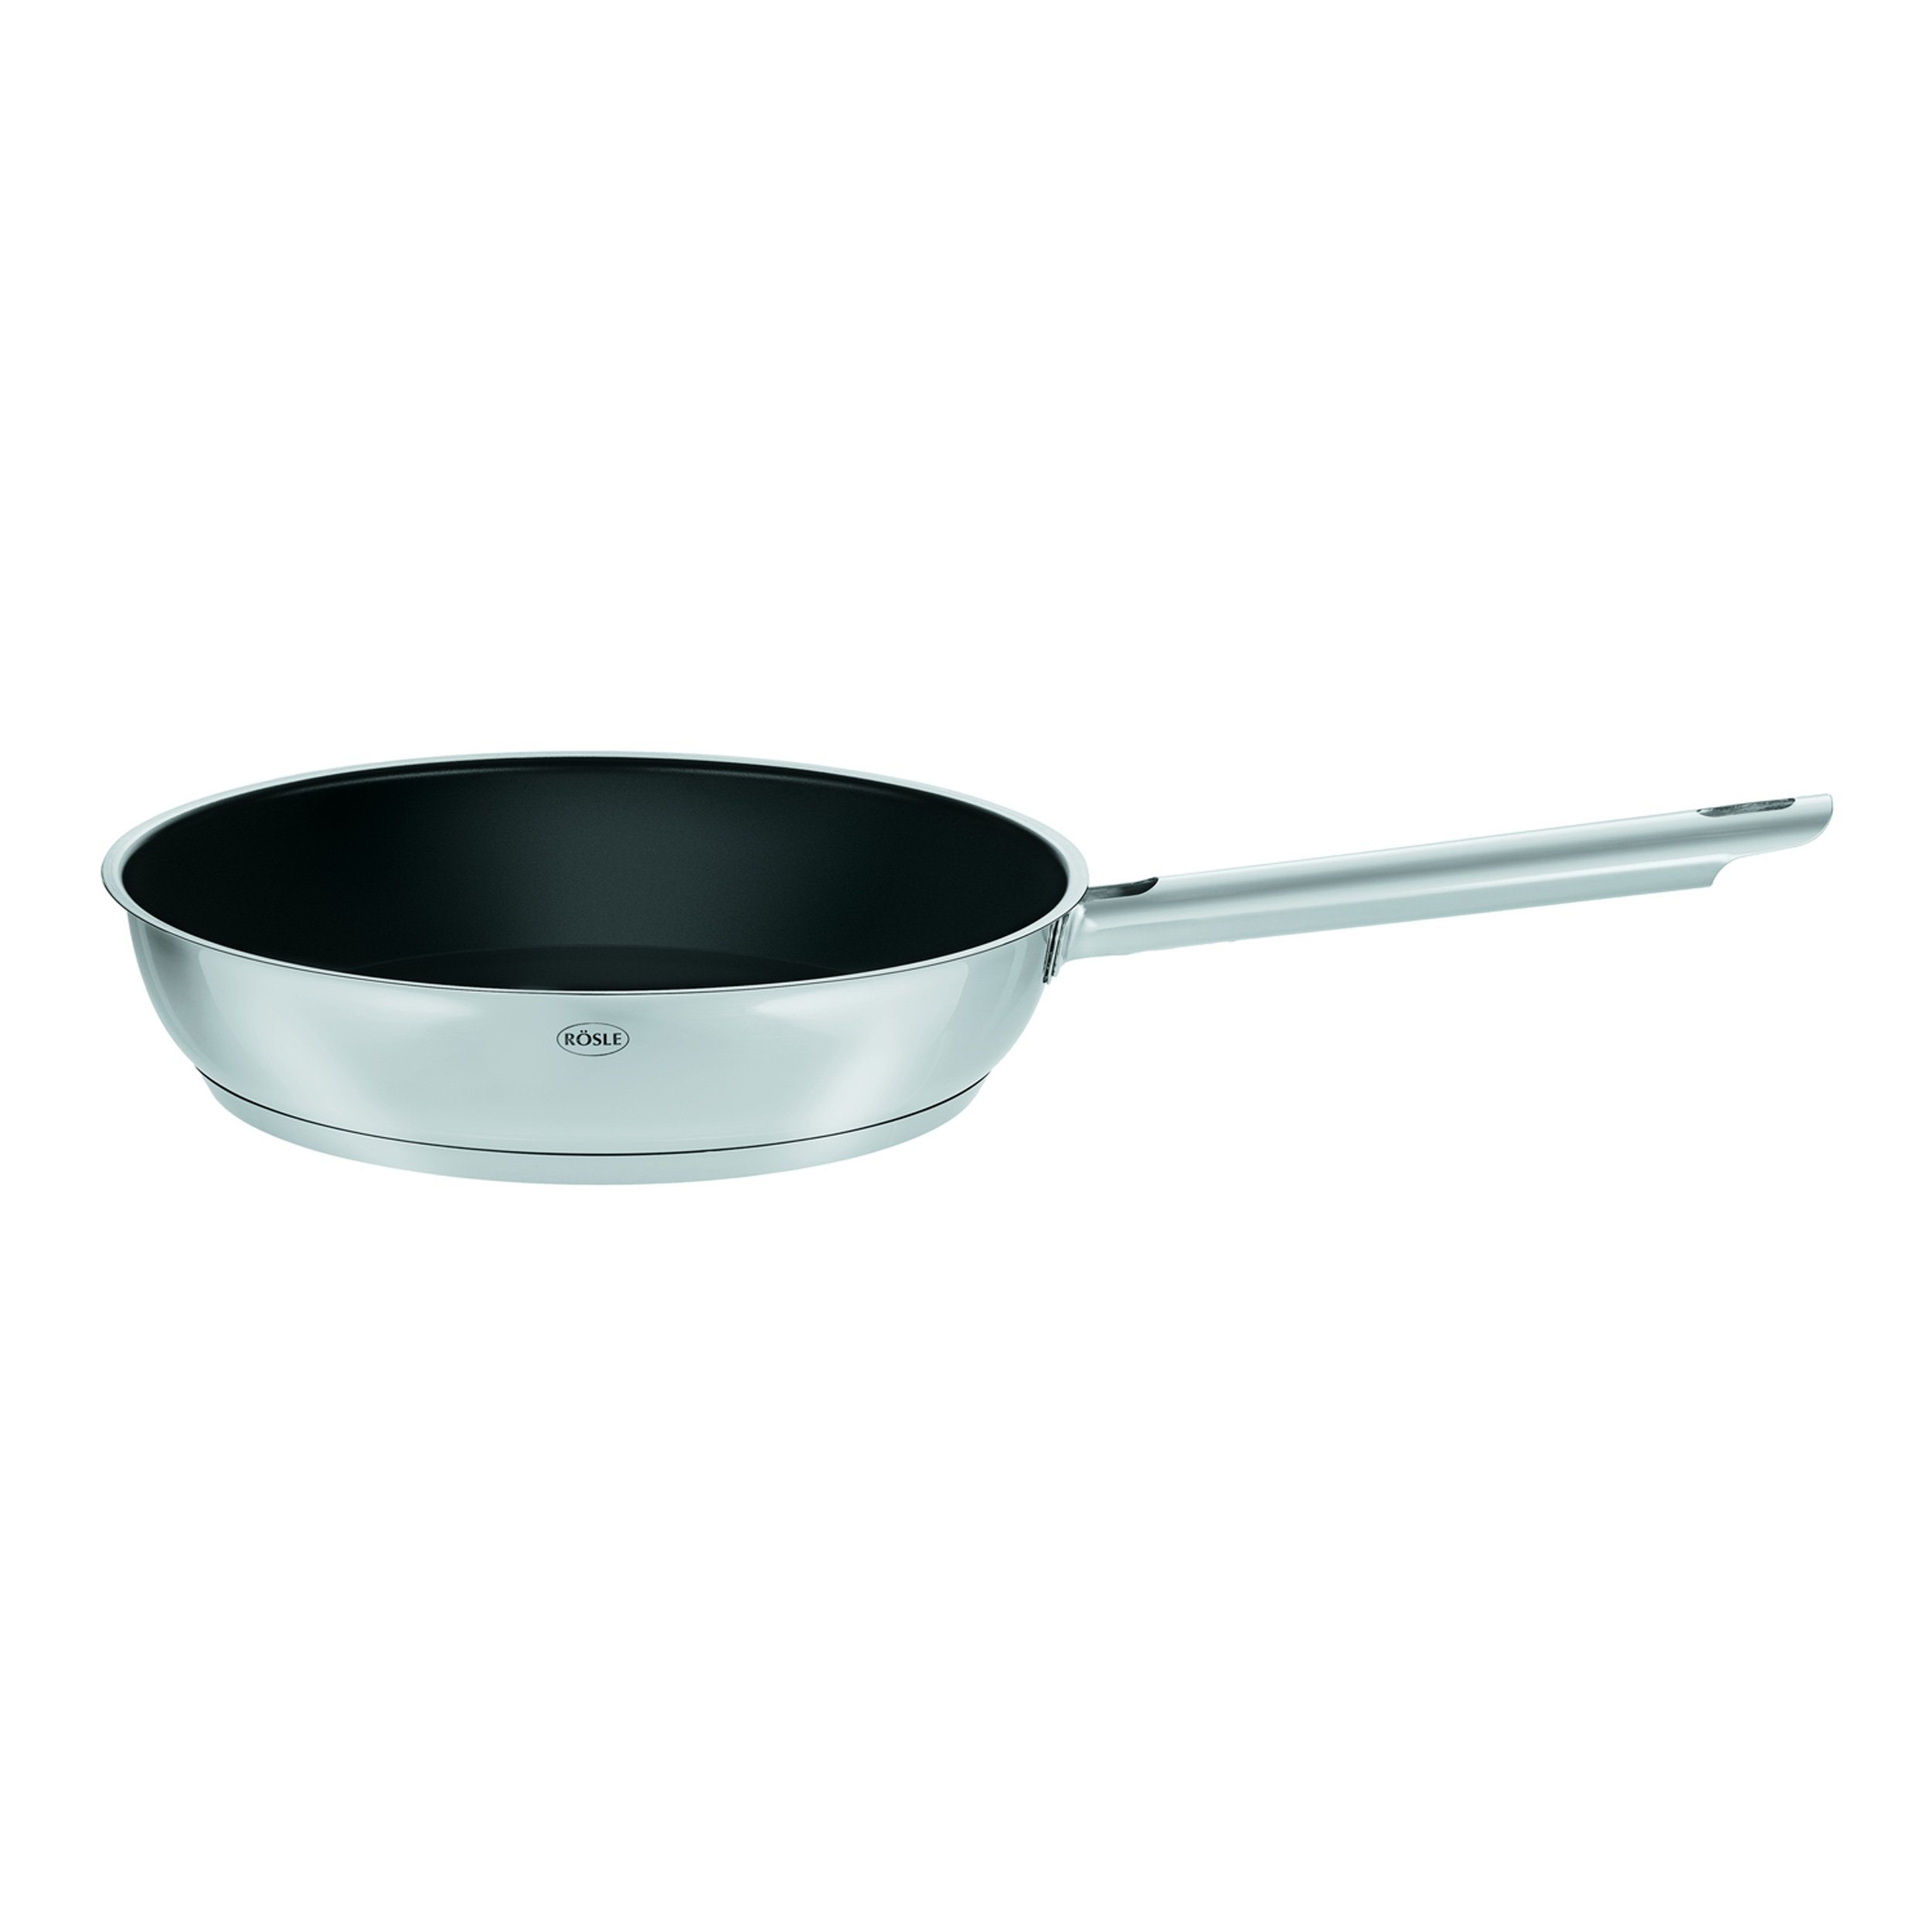 Rösle Elegance - Stainless Steel Cookware - Chef Pan with Ceramic Coating, 11-inch